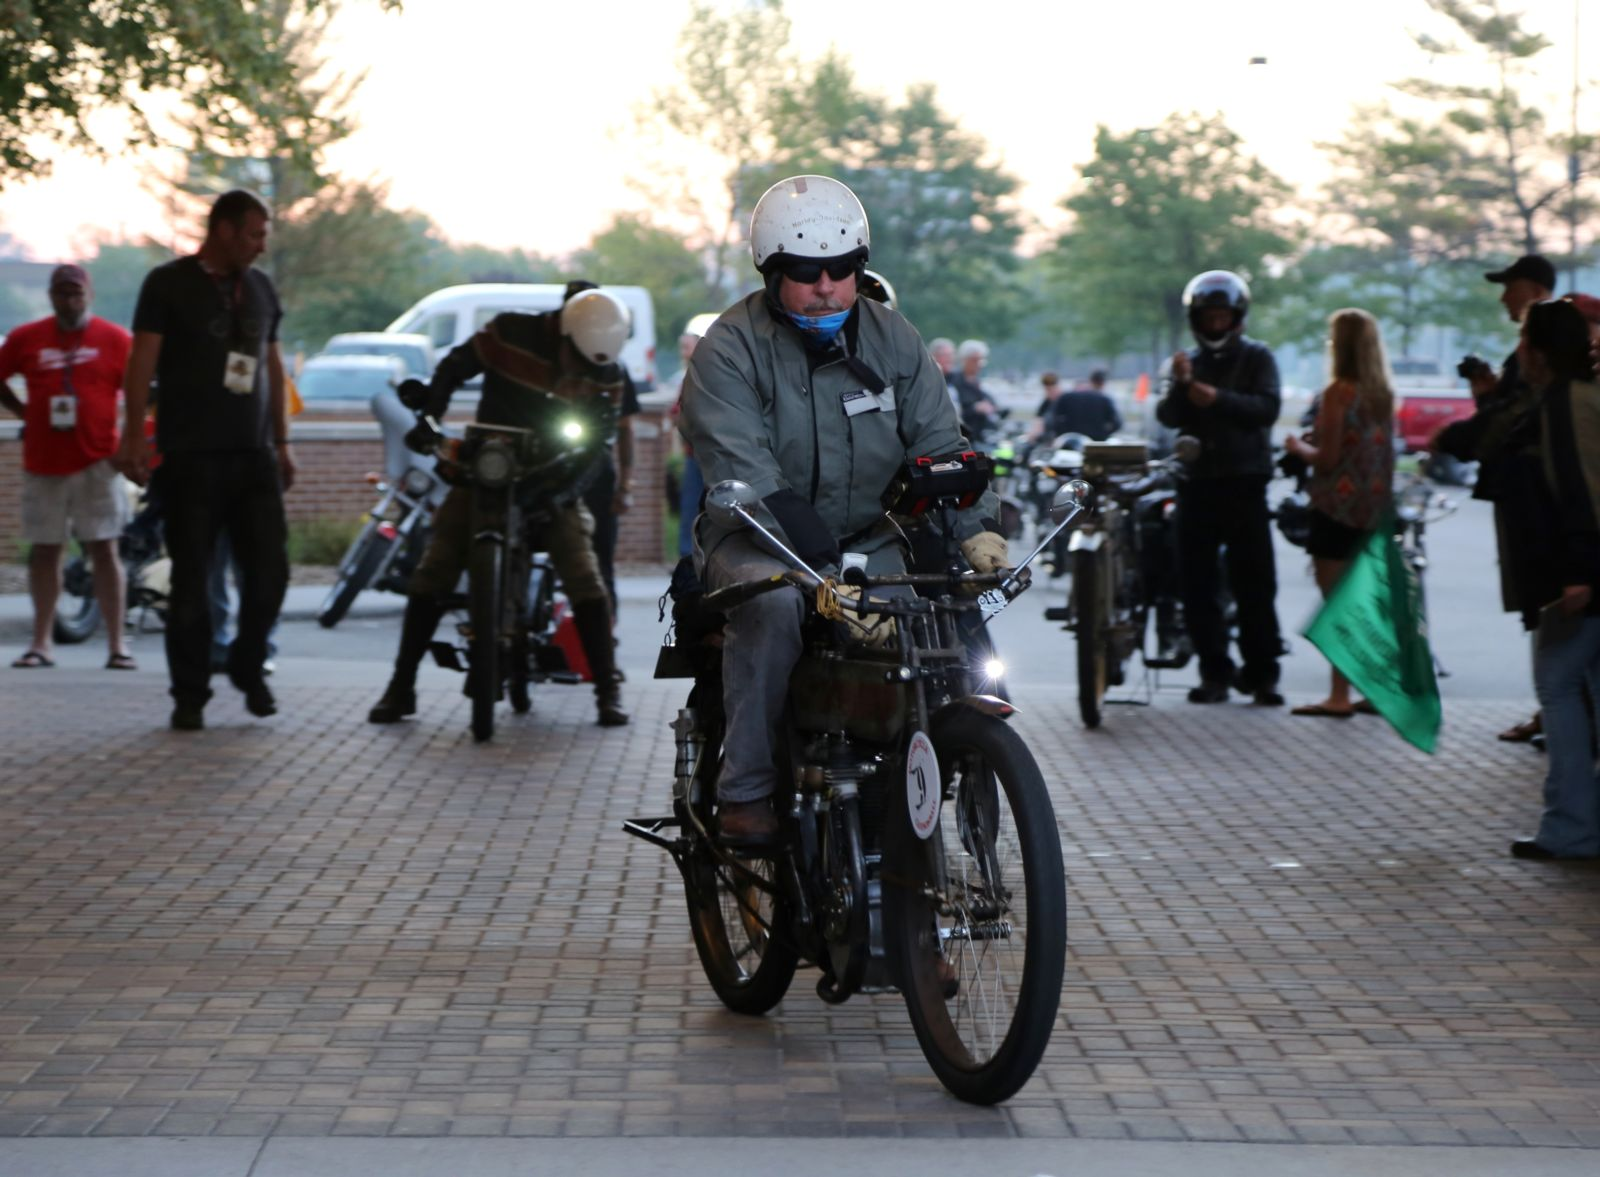 Dean Bordigioni on his 1923 Harley-Davidson JF wins first place in the 2018 Motorcycle Cannonball Final